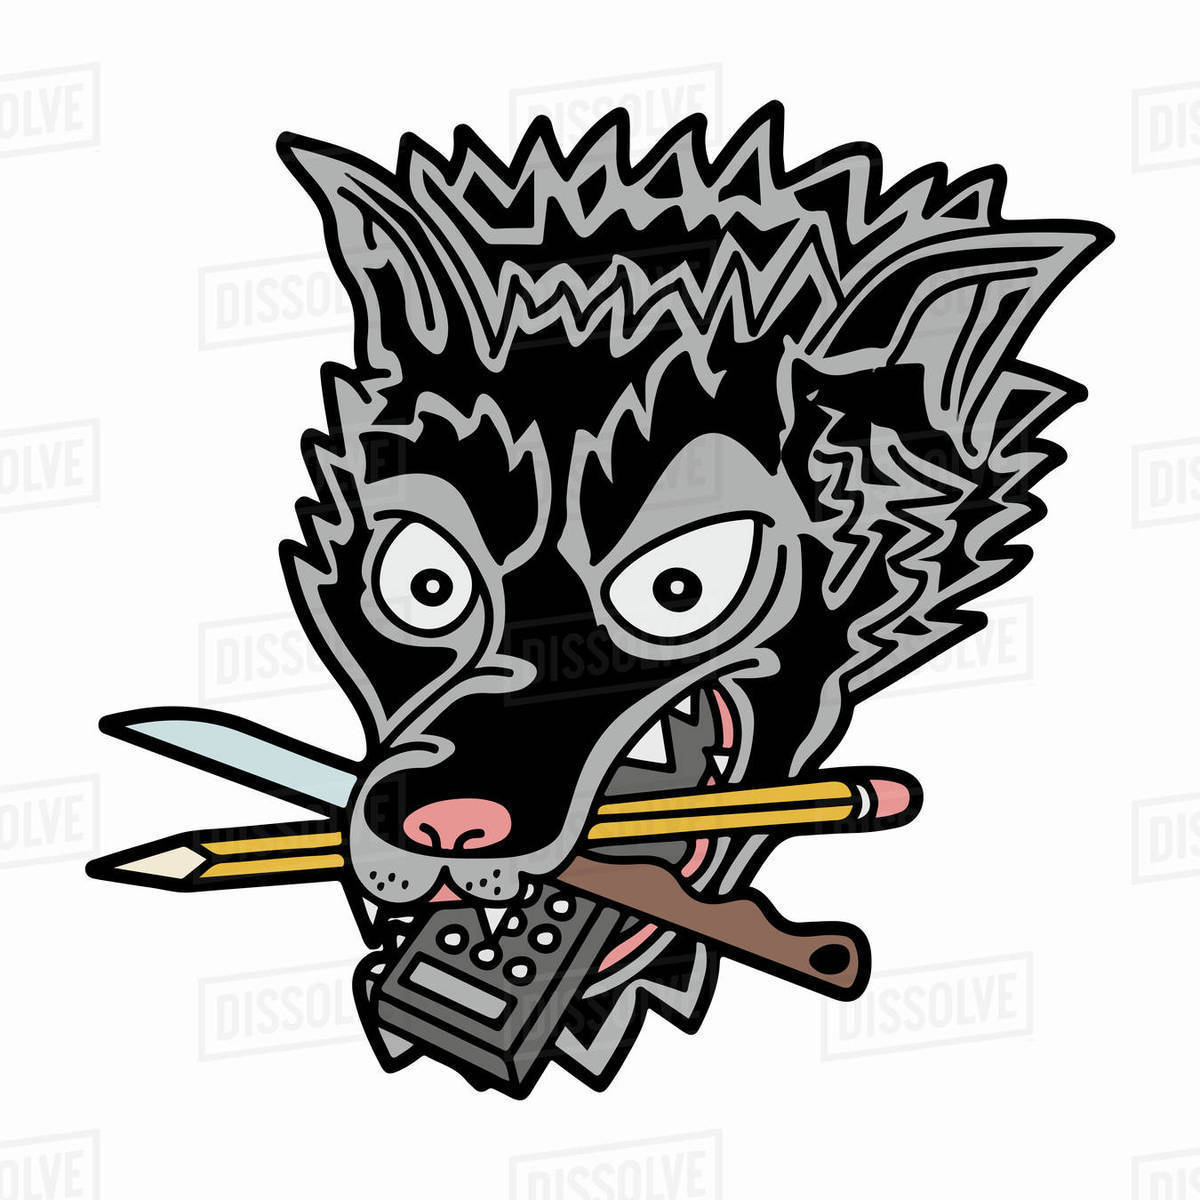 Illustration of animal holding knife, pencil, and remote control in his mouth against white background Royalty-free stock photo